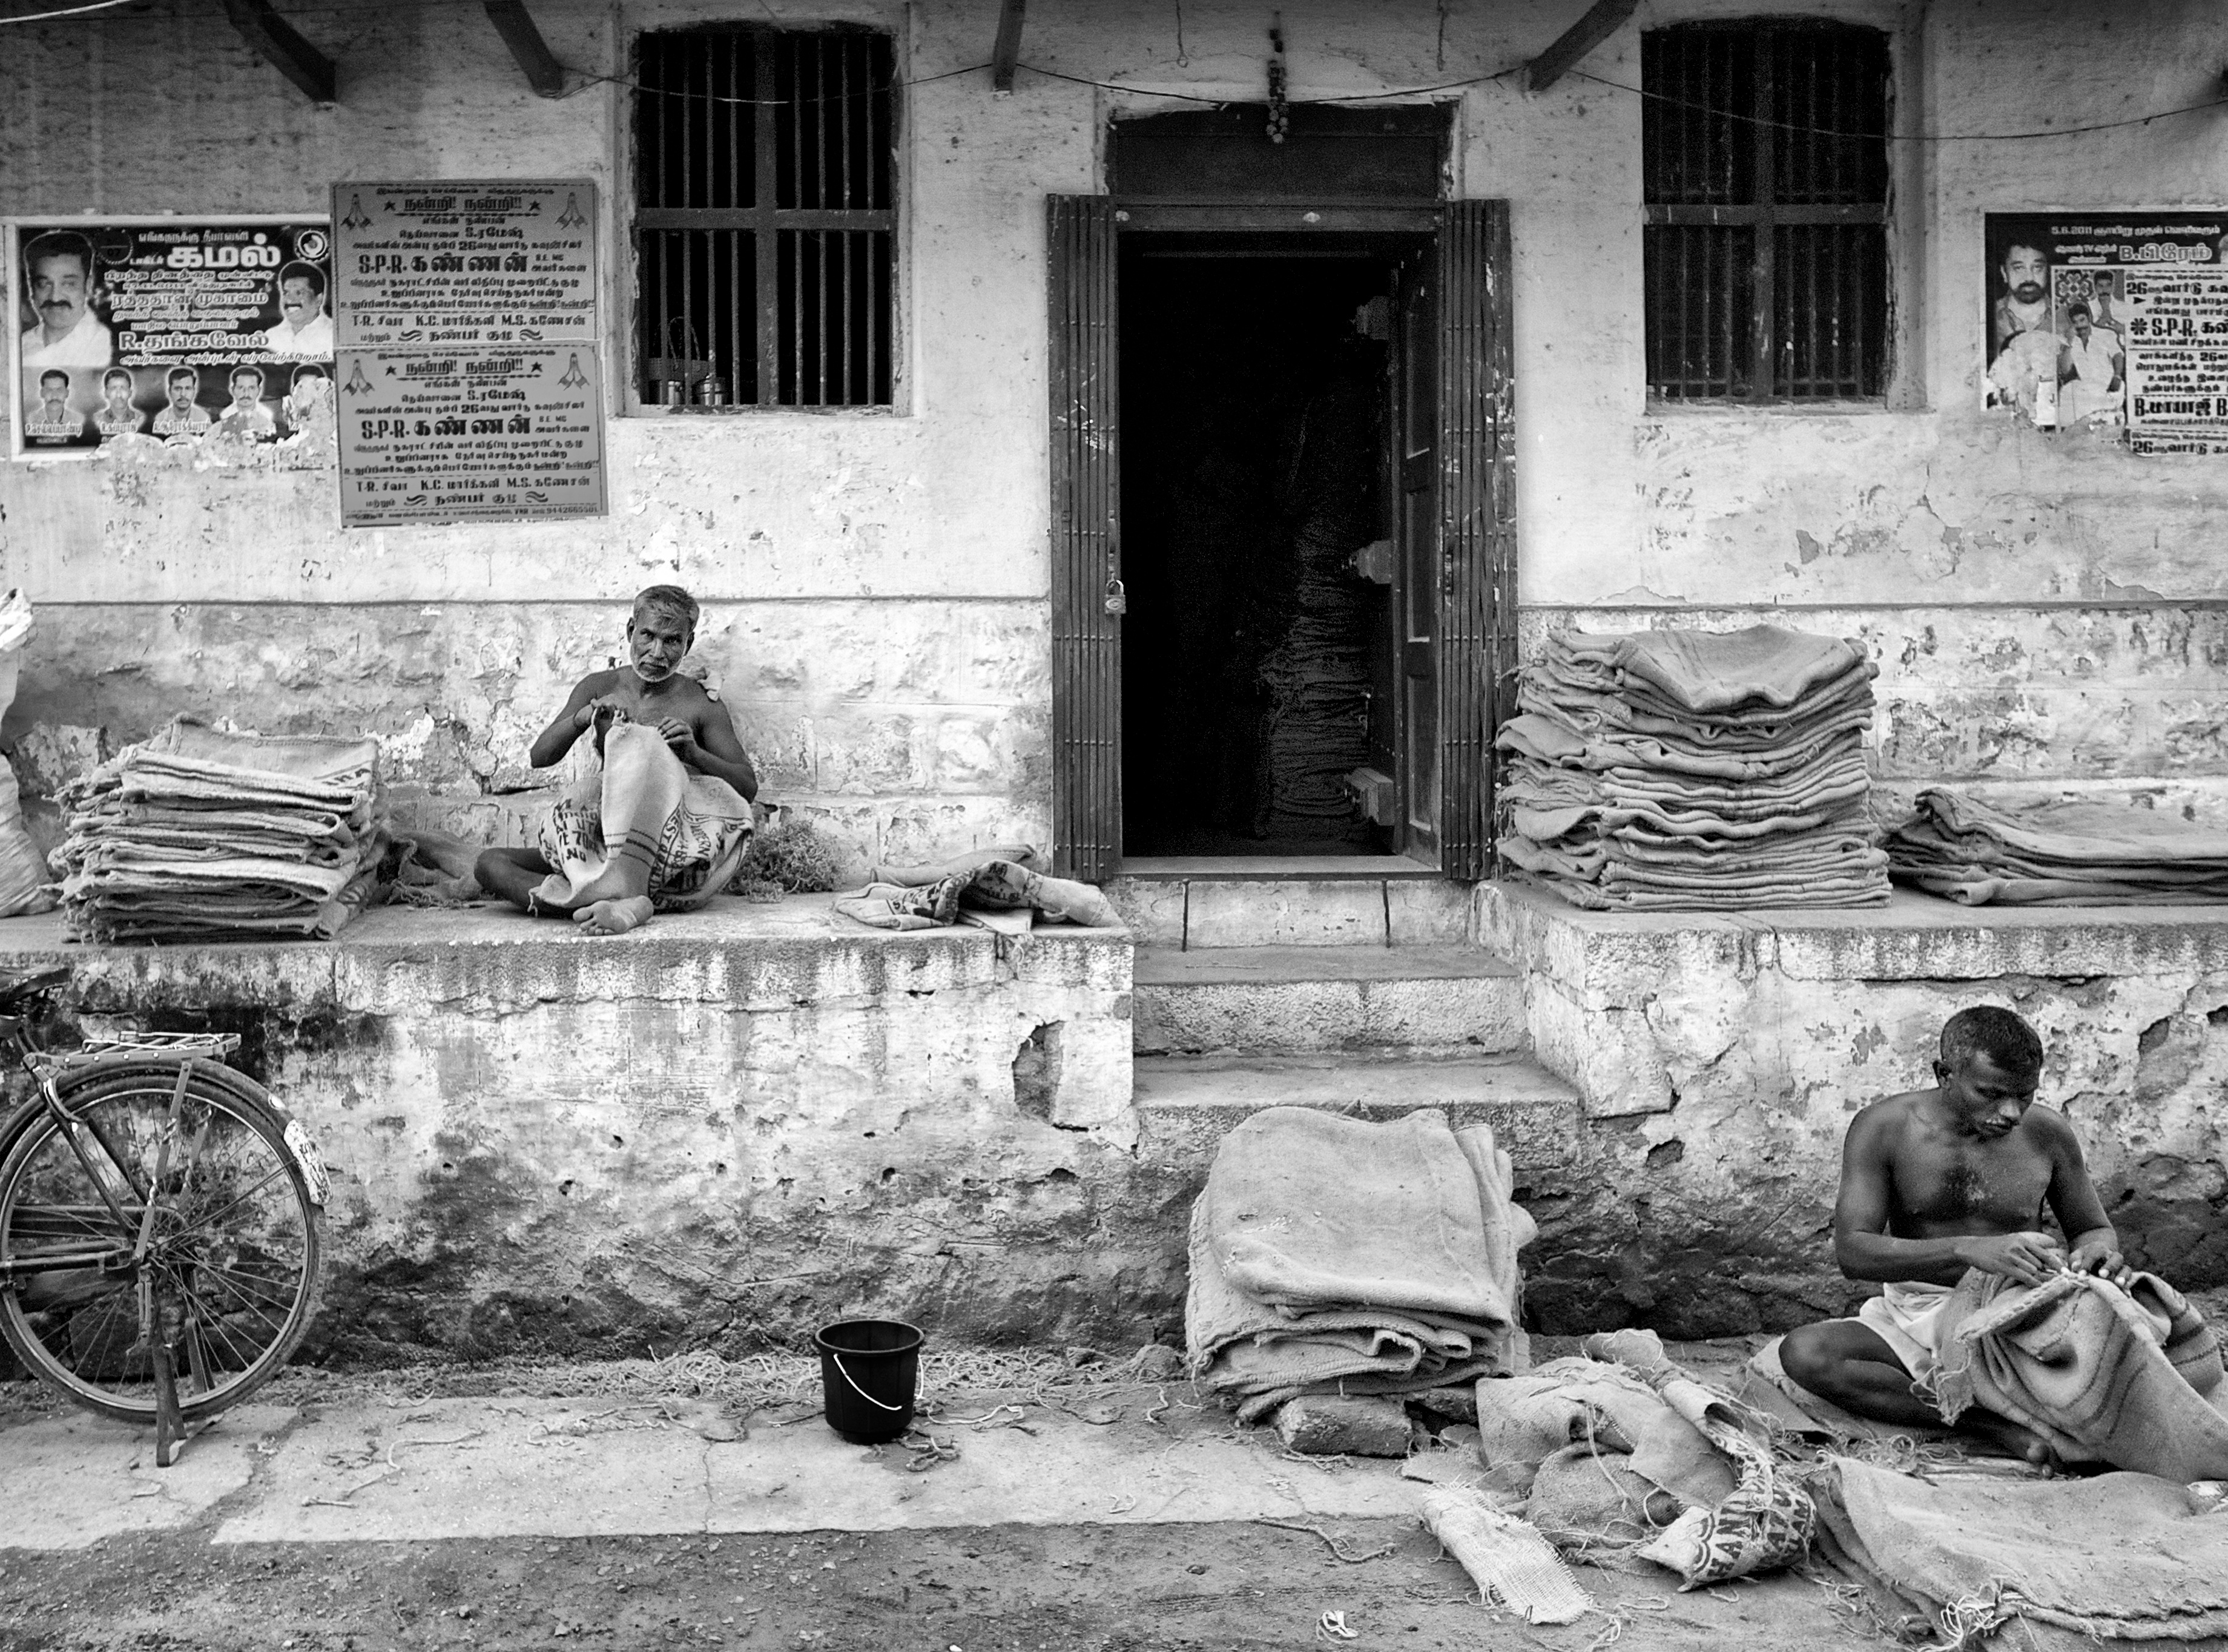 Workers patching up the jute sacks for reuse, in front of a warehouse. Virudhunagar, India